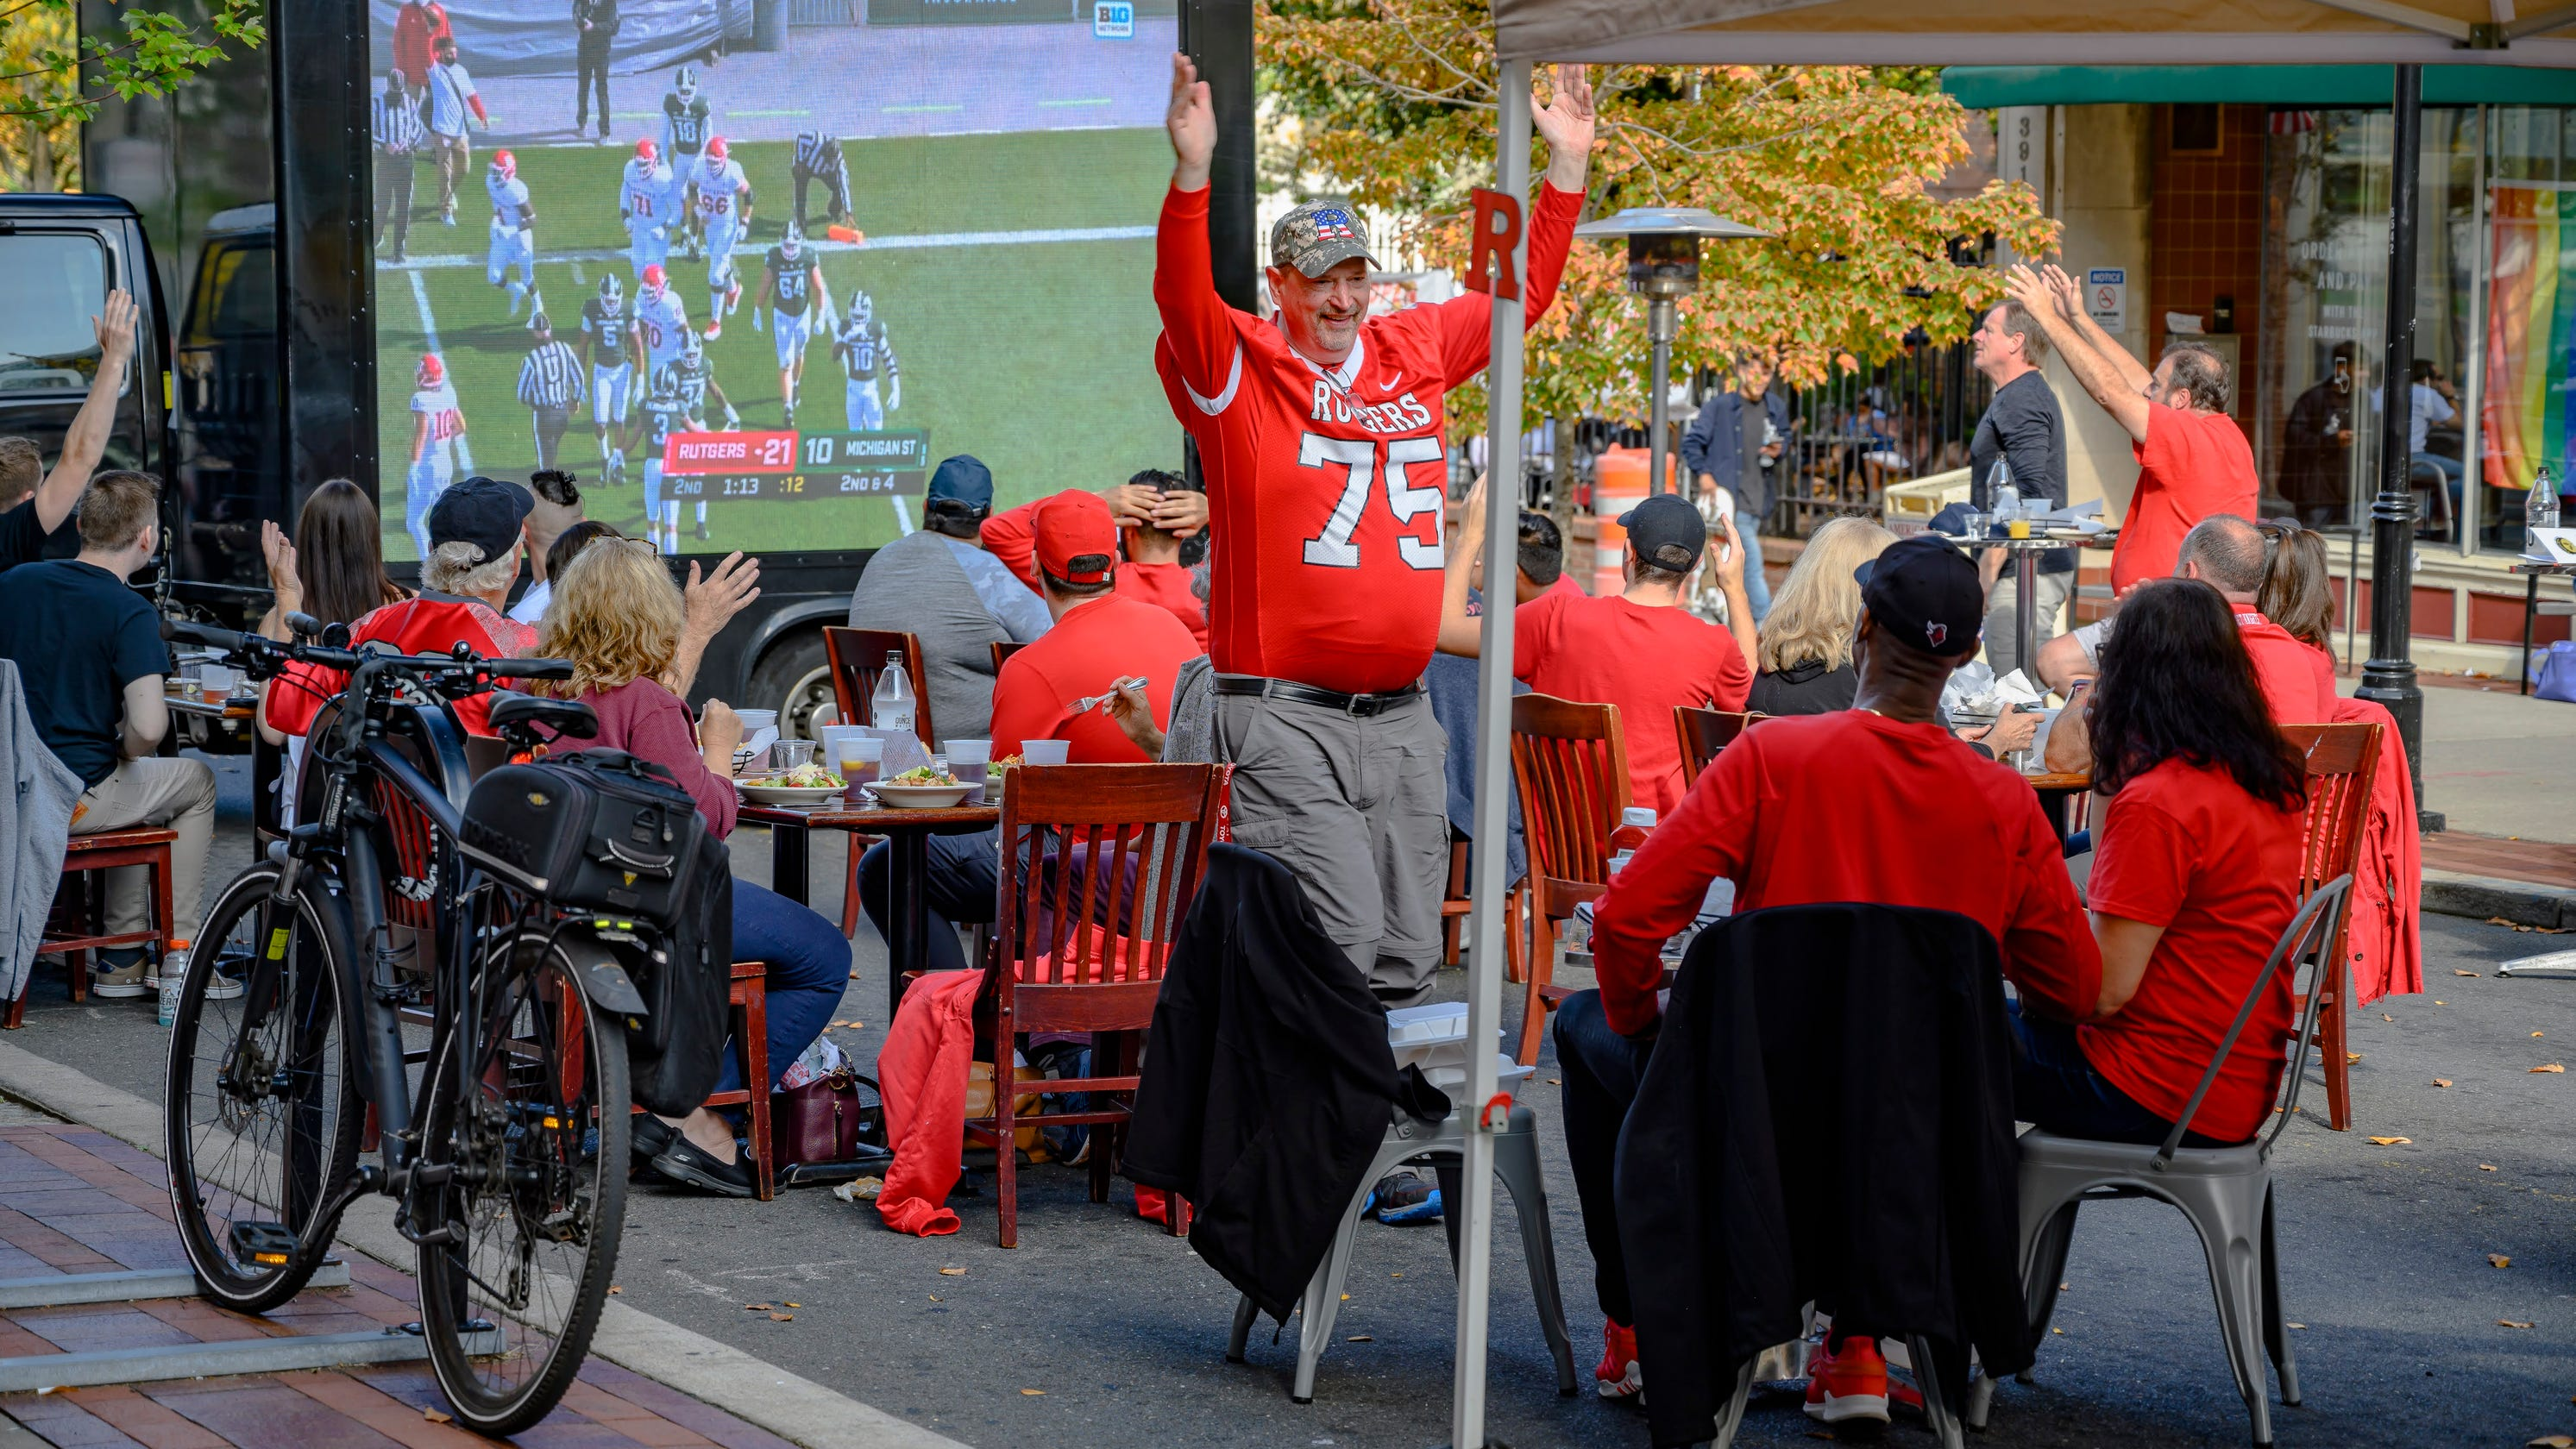 'A socially distanced good time:' Rutgers football tailgate parties keep chopping